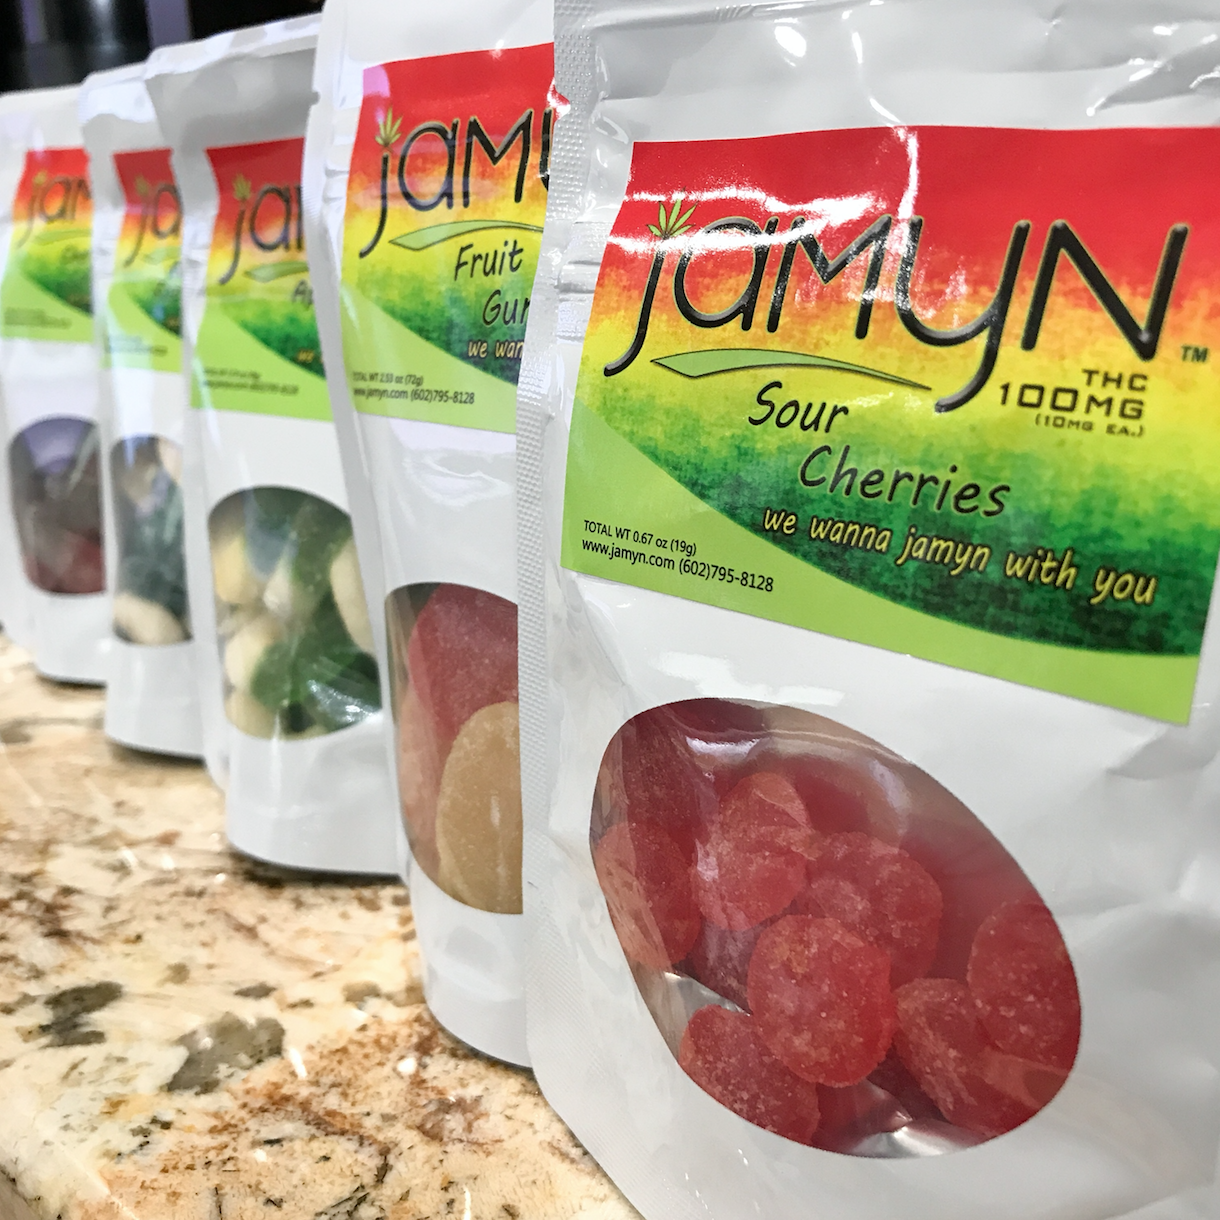 Jamyn Sour Cherries Edibles Tucson Dispensary